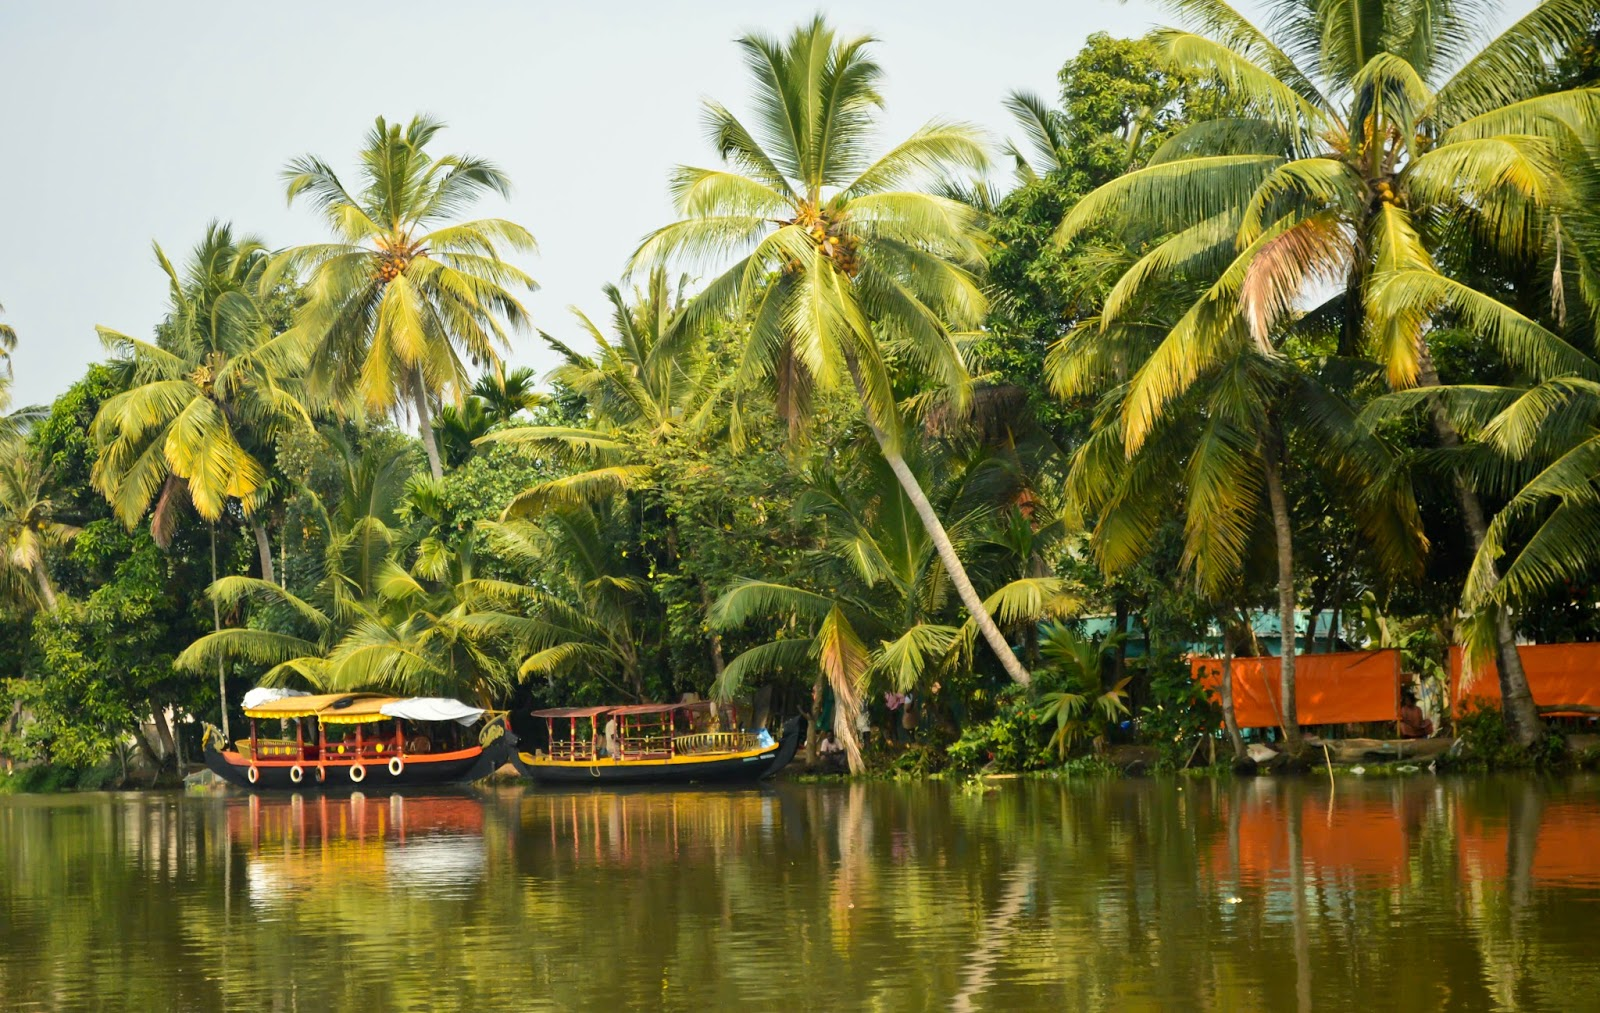 http://aadyaetravel.com/Kerala_backwaters.aspx